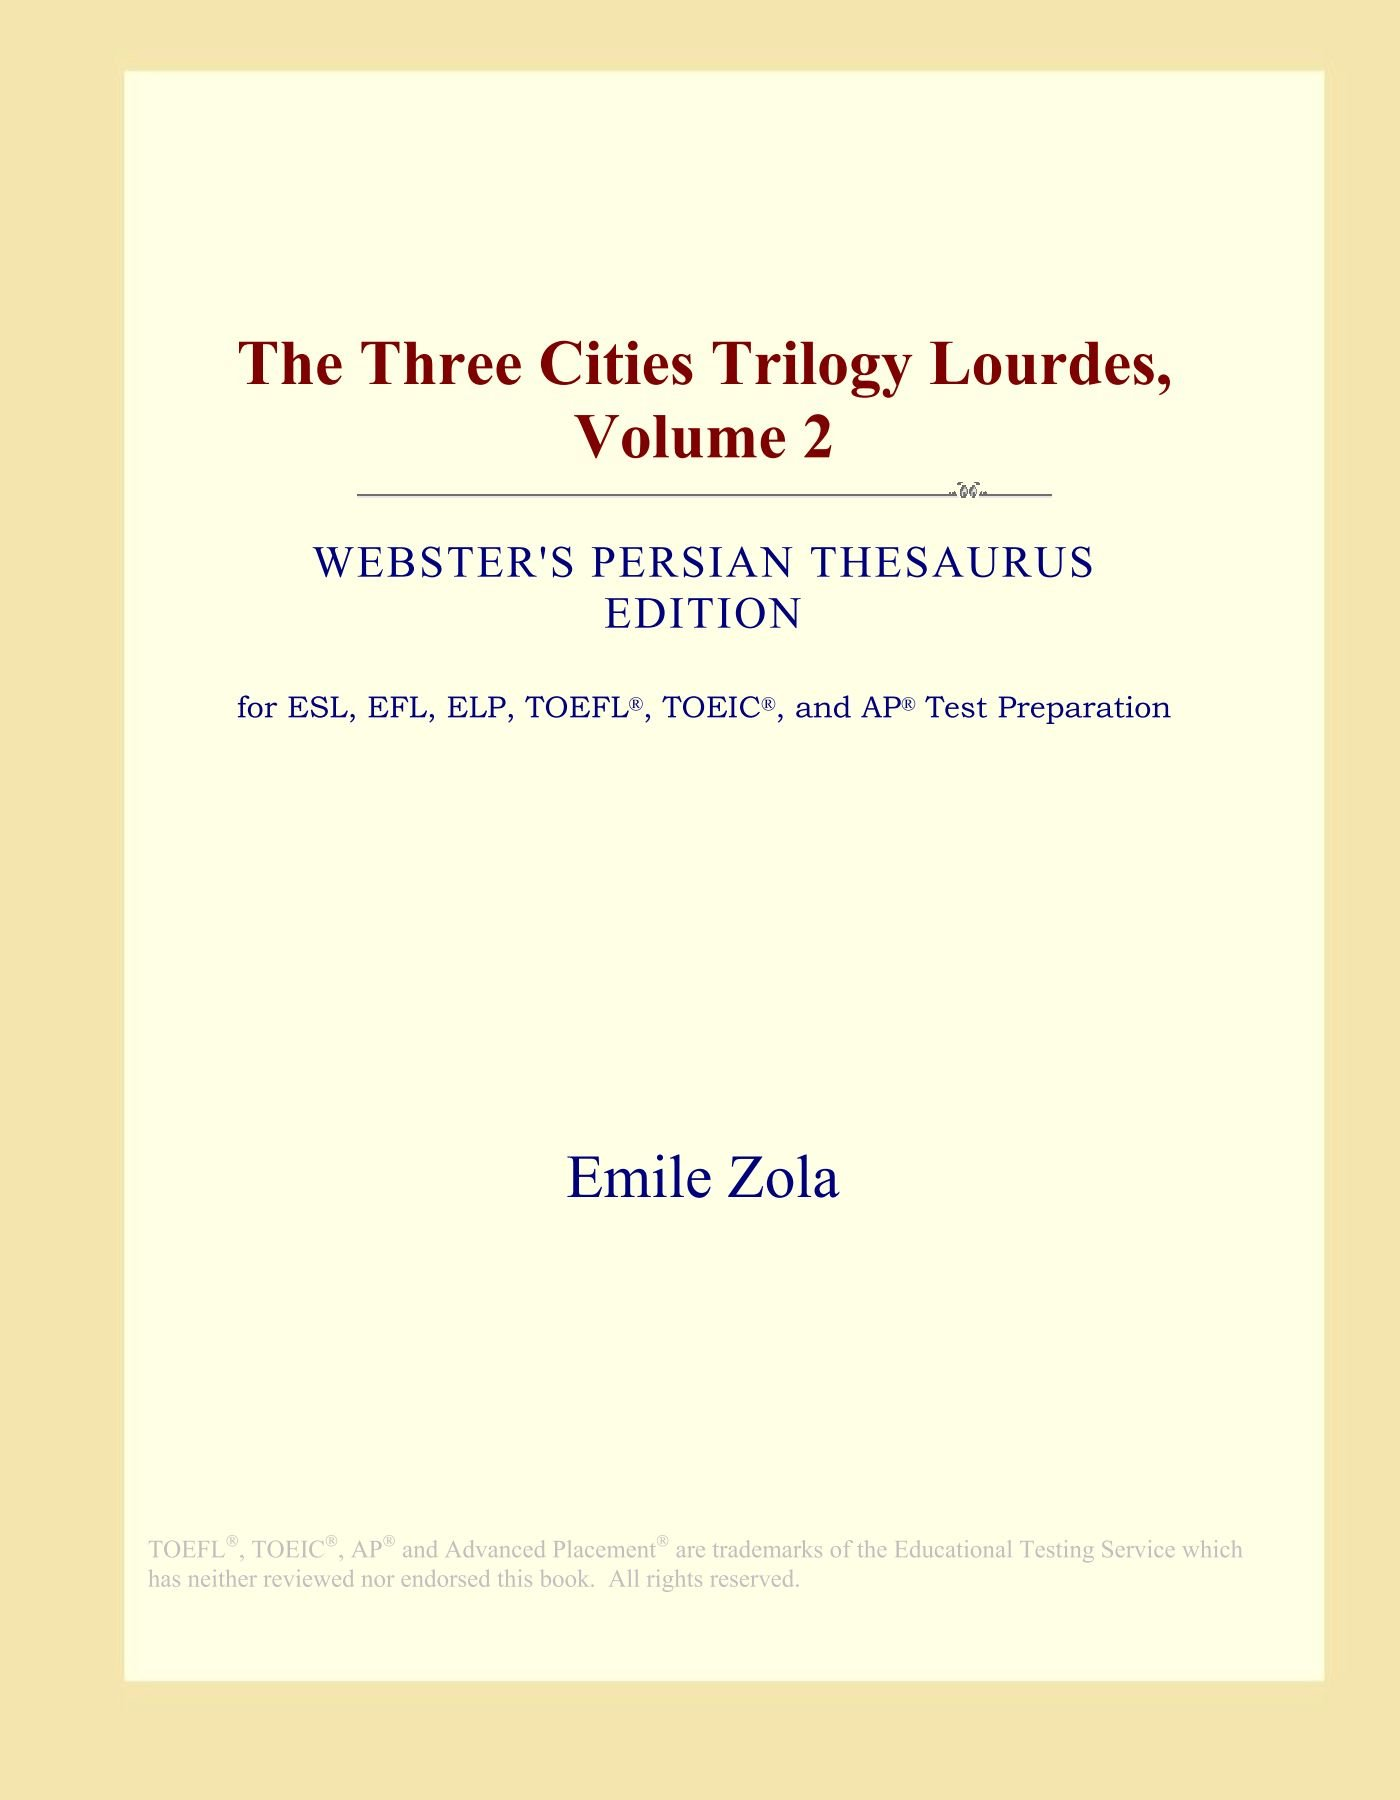 Download The Three Cities Trilogy Lourdes, Volume 2 (Webster's Persian Thesaurus Edition) pdf